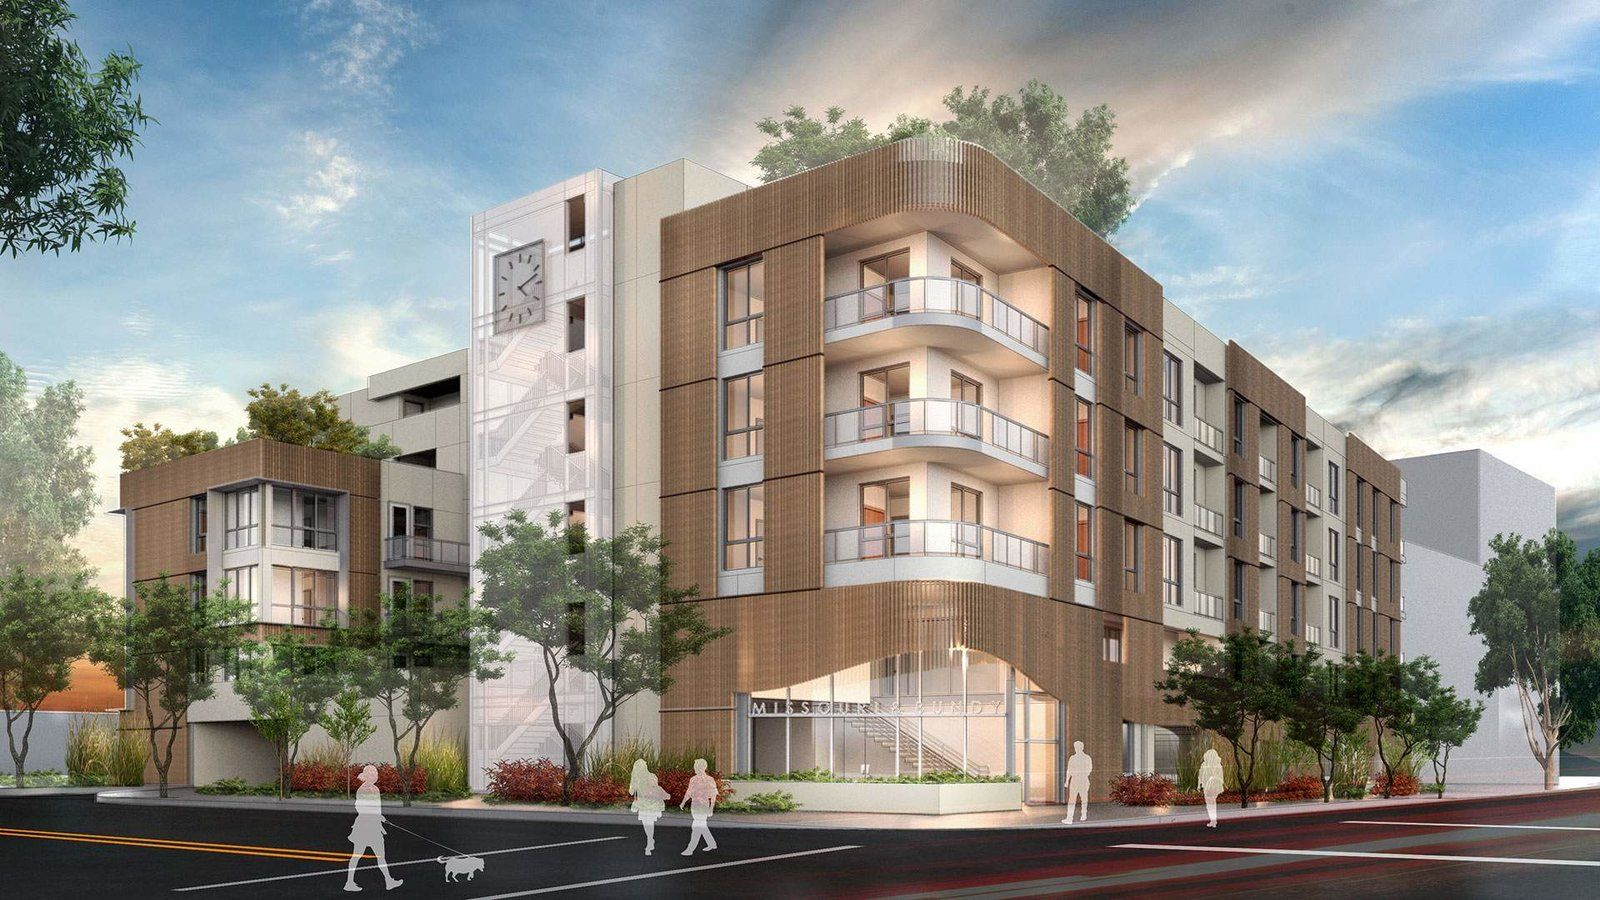 Los Angeles Funds 38 New Affordable Housing Projects To Help The Homeless Affordable Housing Los Angeles Apartments Architecture Plan